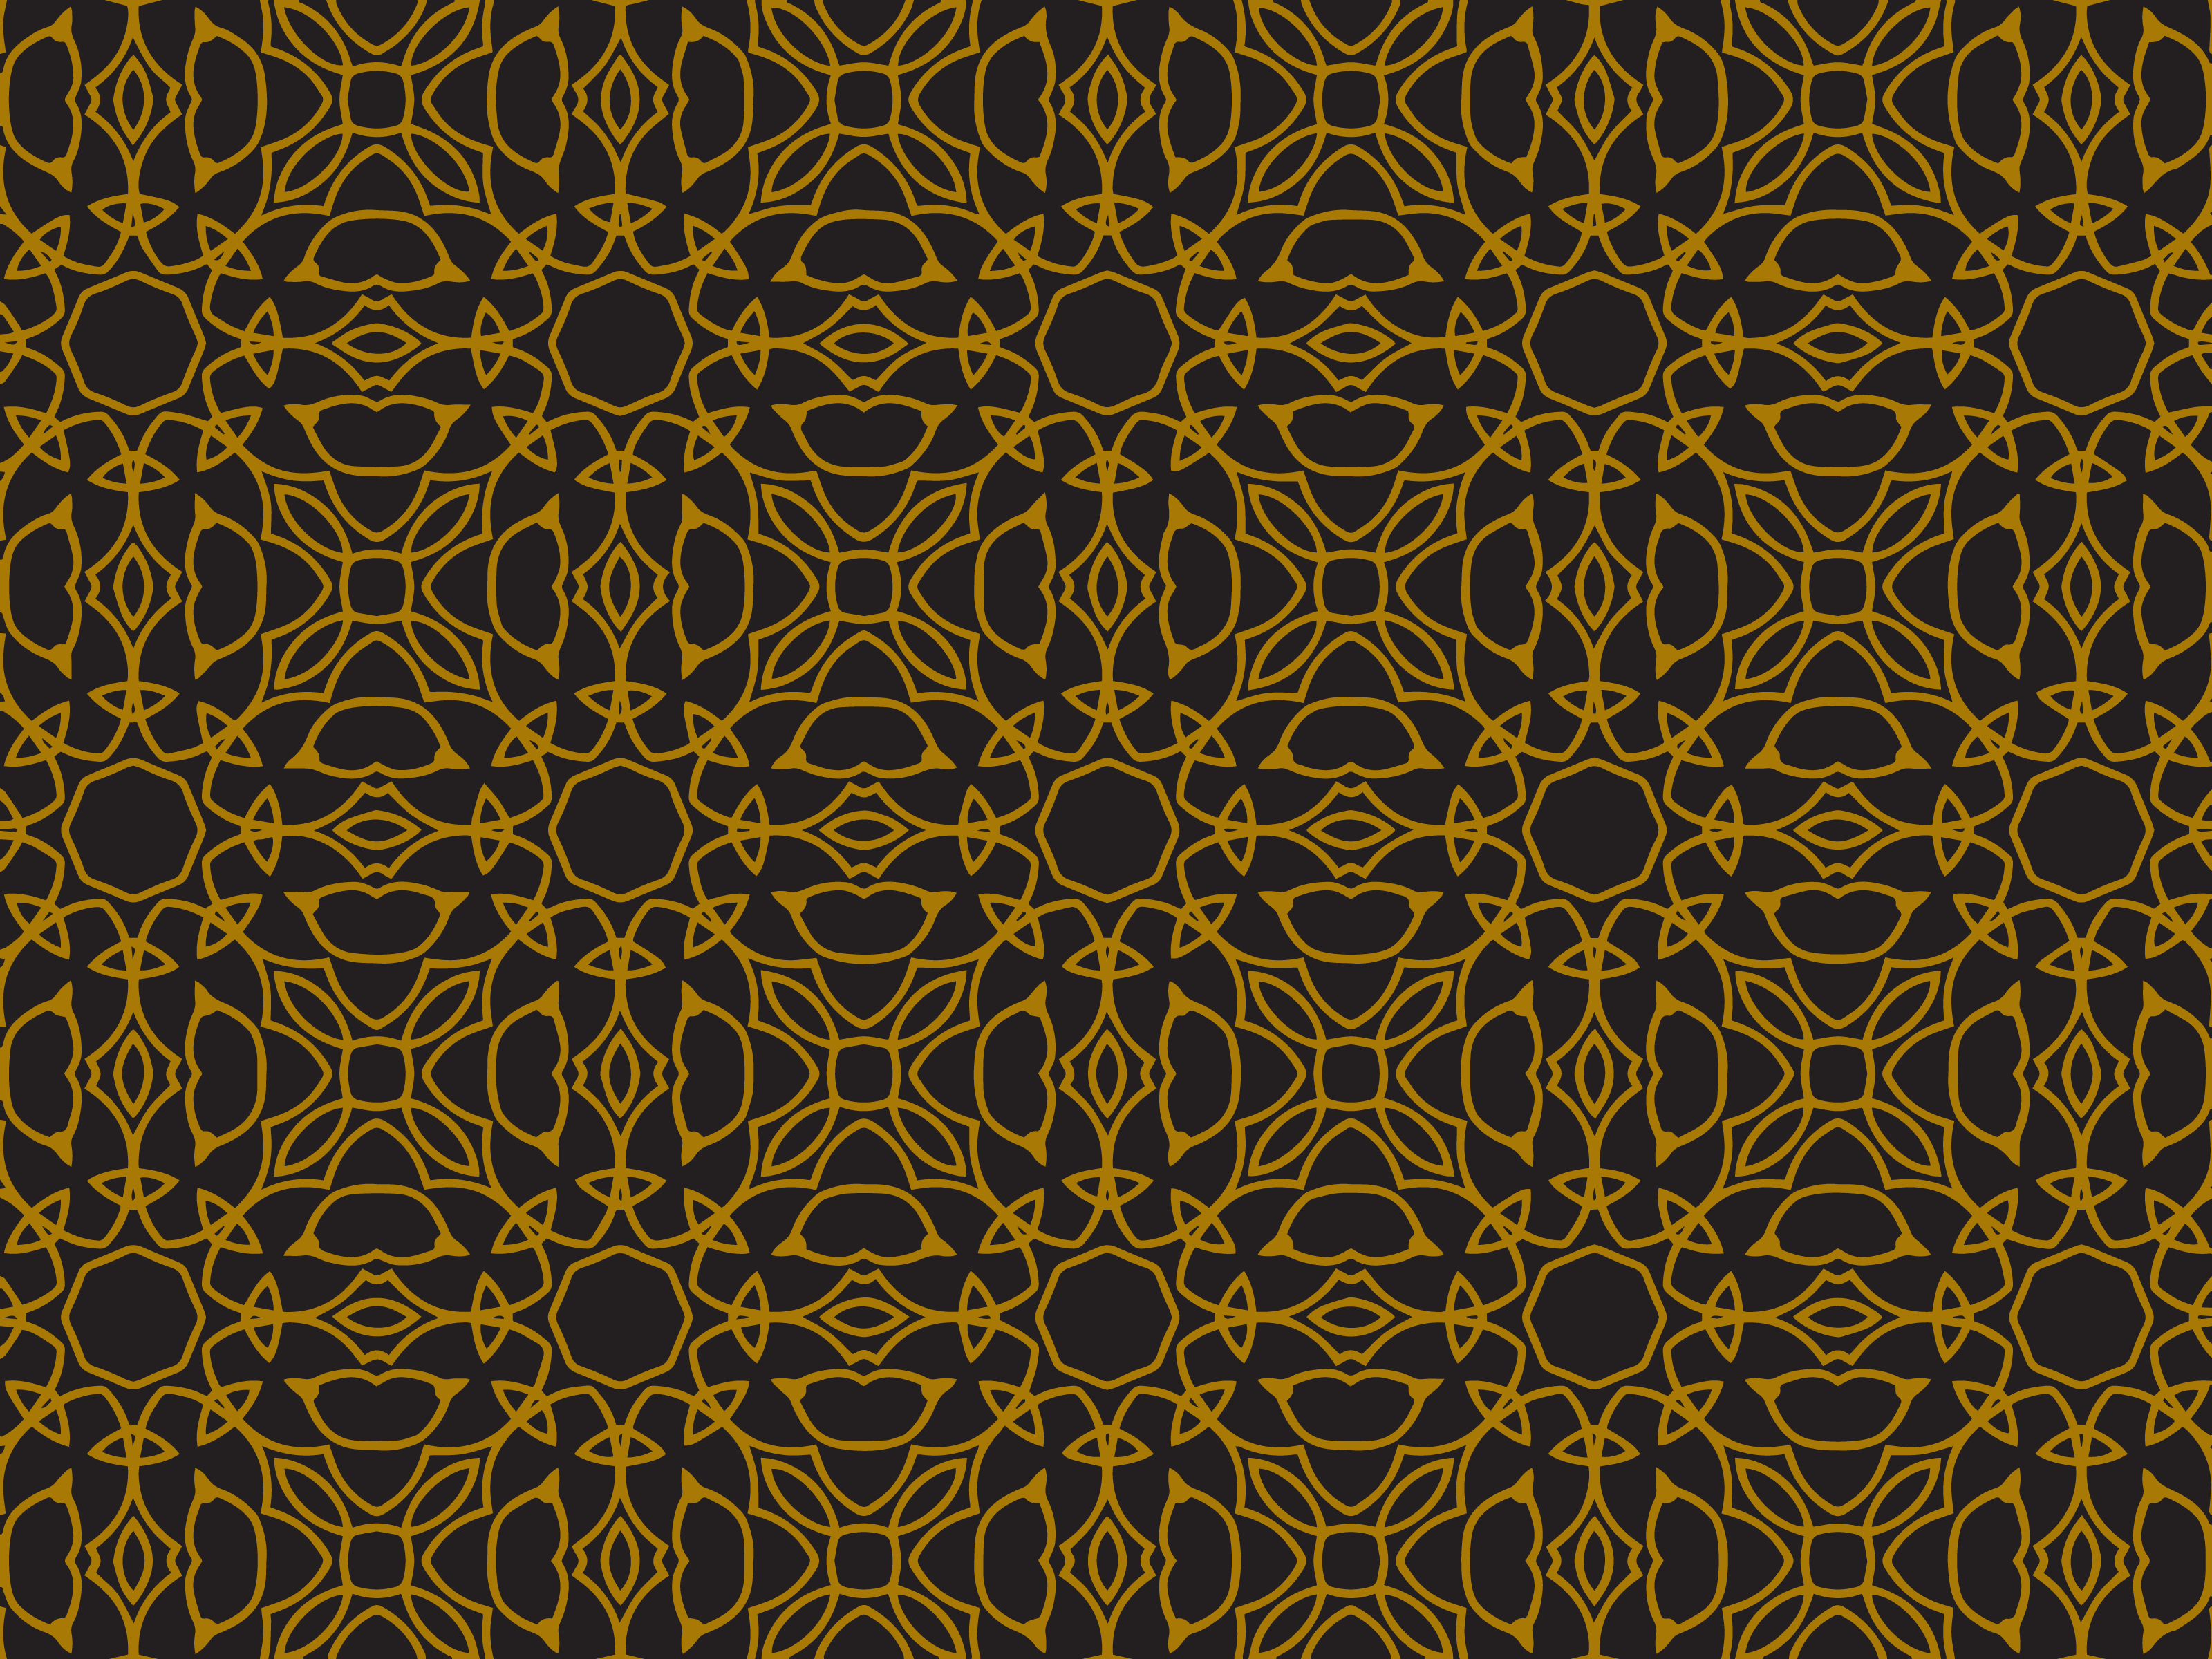 Download Free Pattern Gold Circle Line Graphic By Silkymilkycreative for Cricut Explore, Silhouette and other cutting machines.